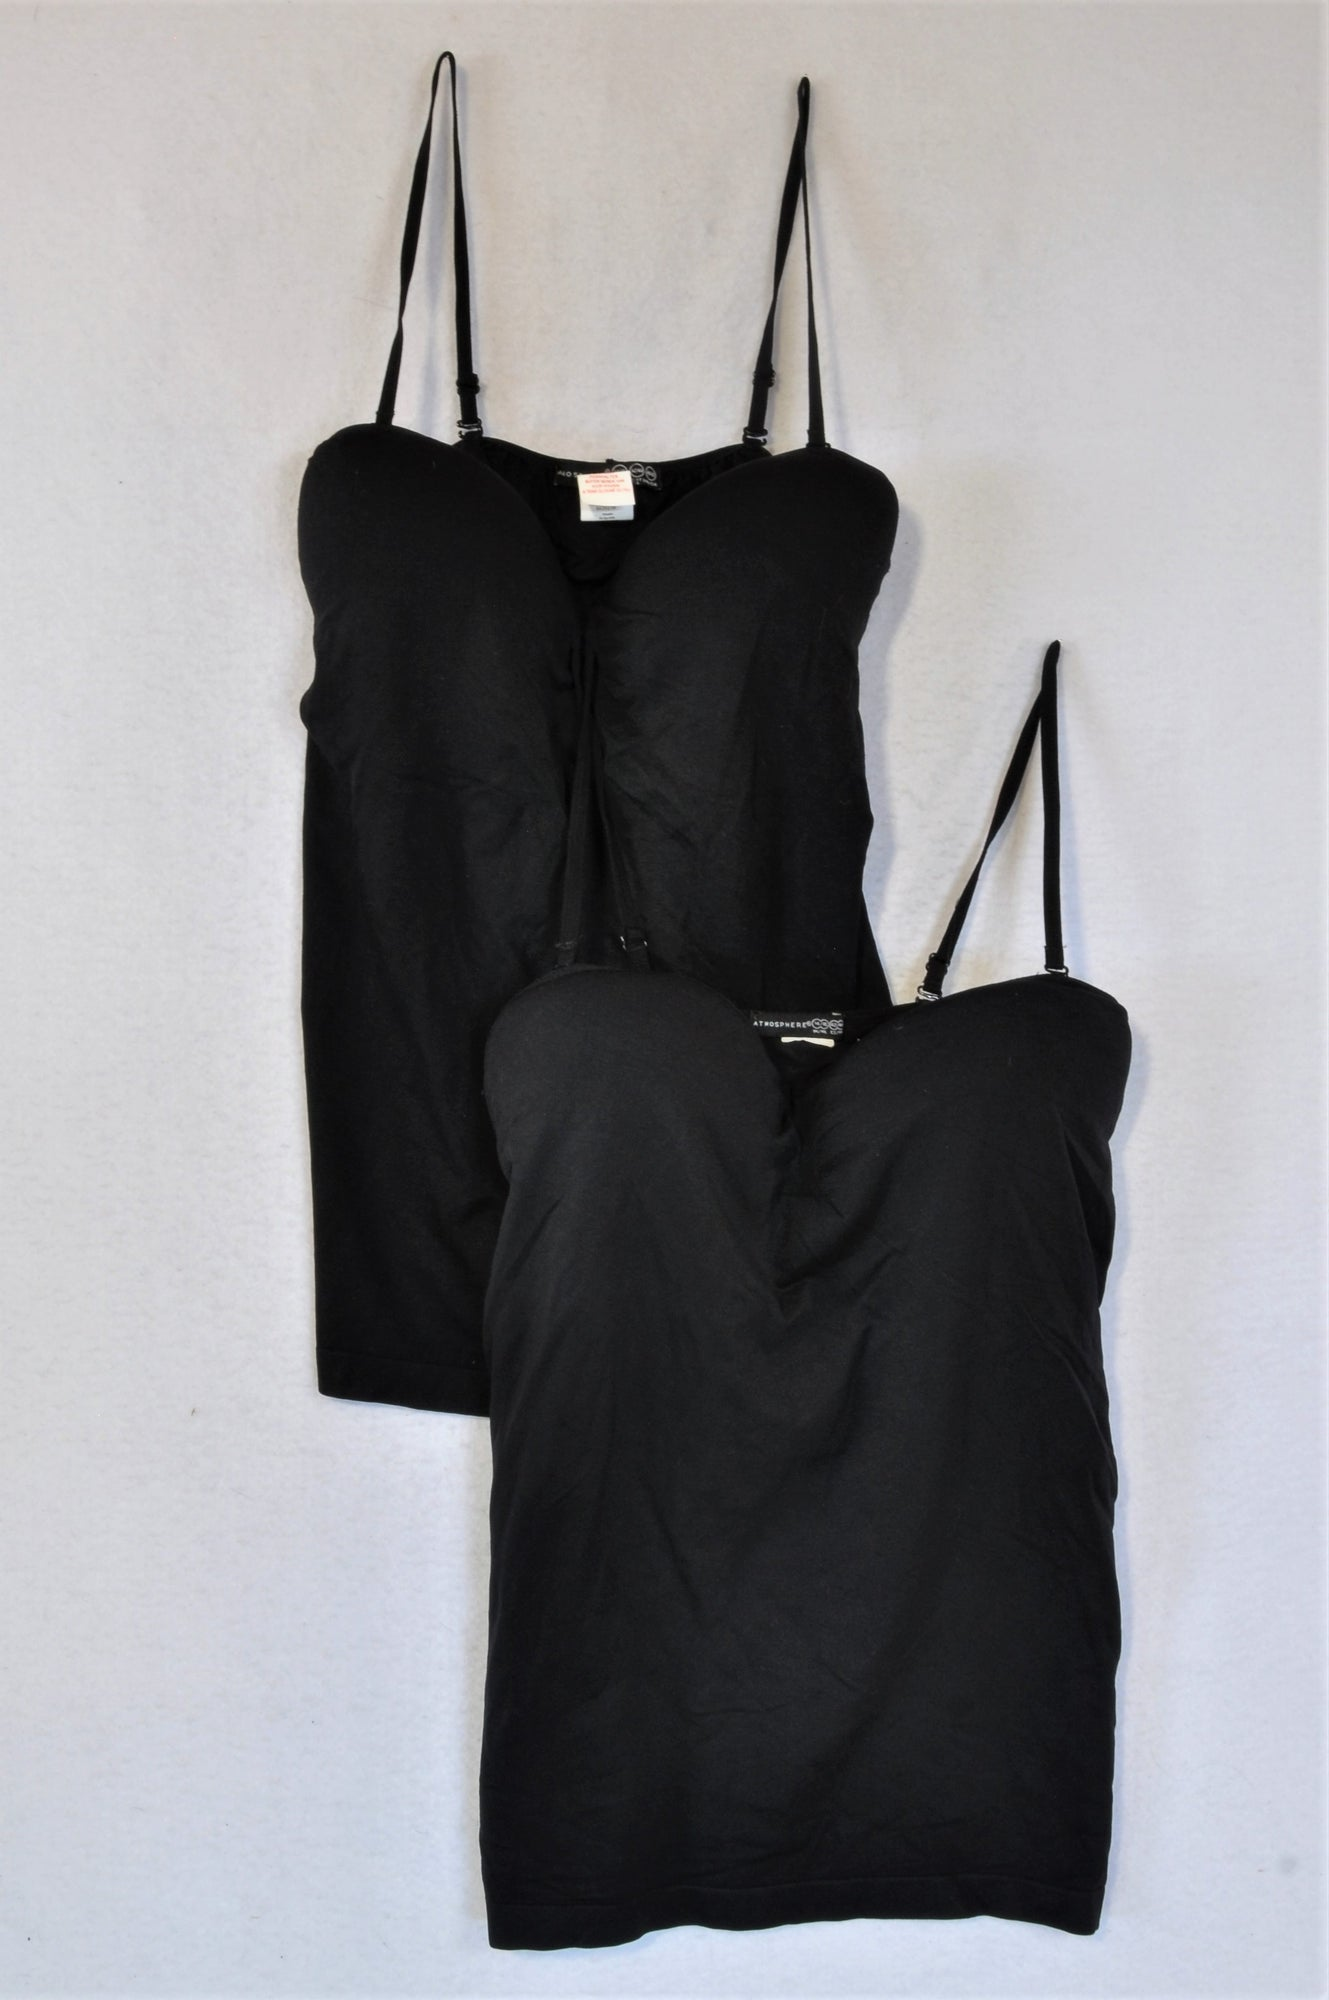 Atmosphere Set Of 2 Black Seamless Support Camisole Tank Tops Women Size 14